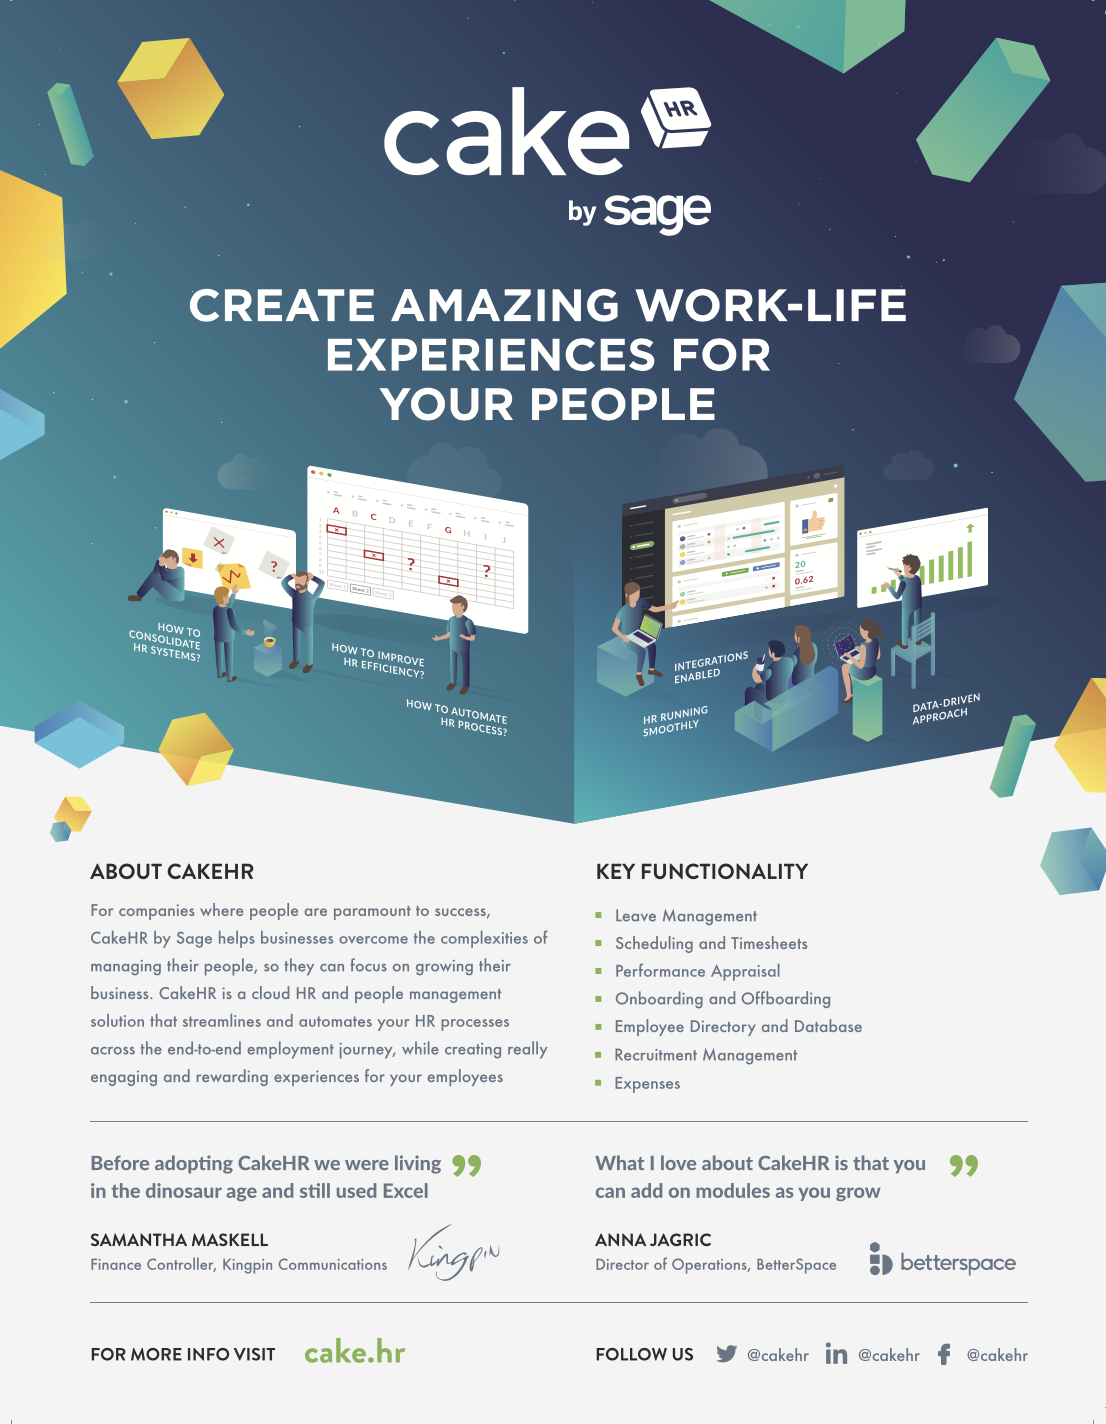 Create amazing work-life experiences for your people with HR software CakeHR by Sage